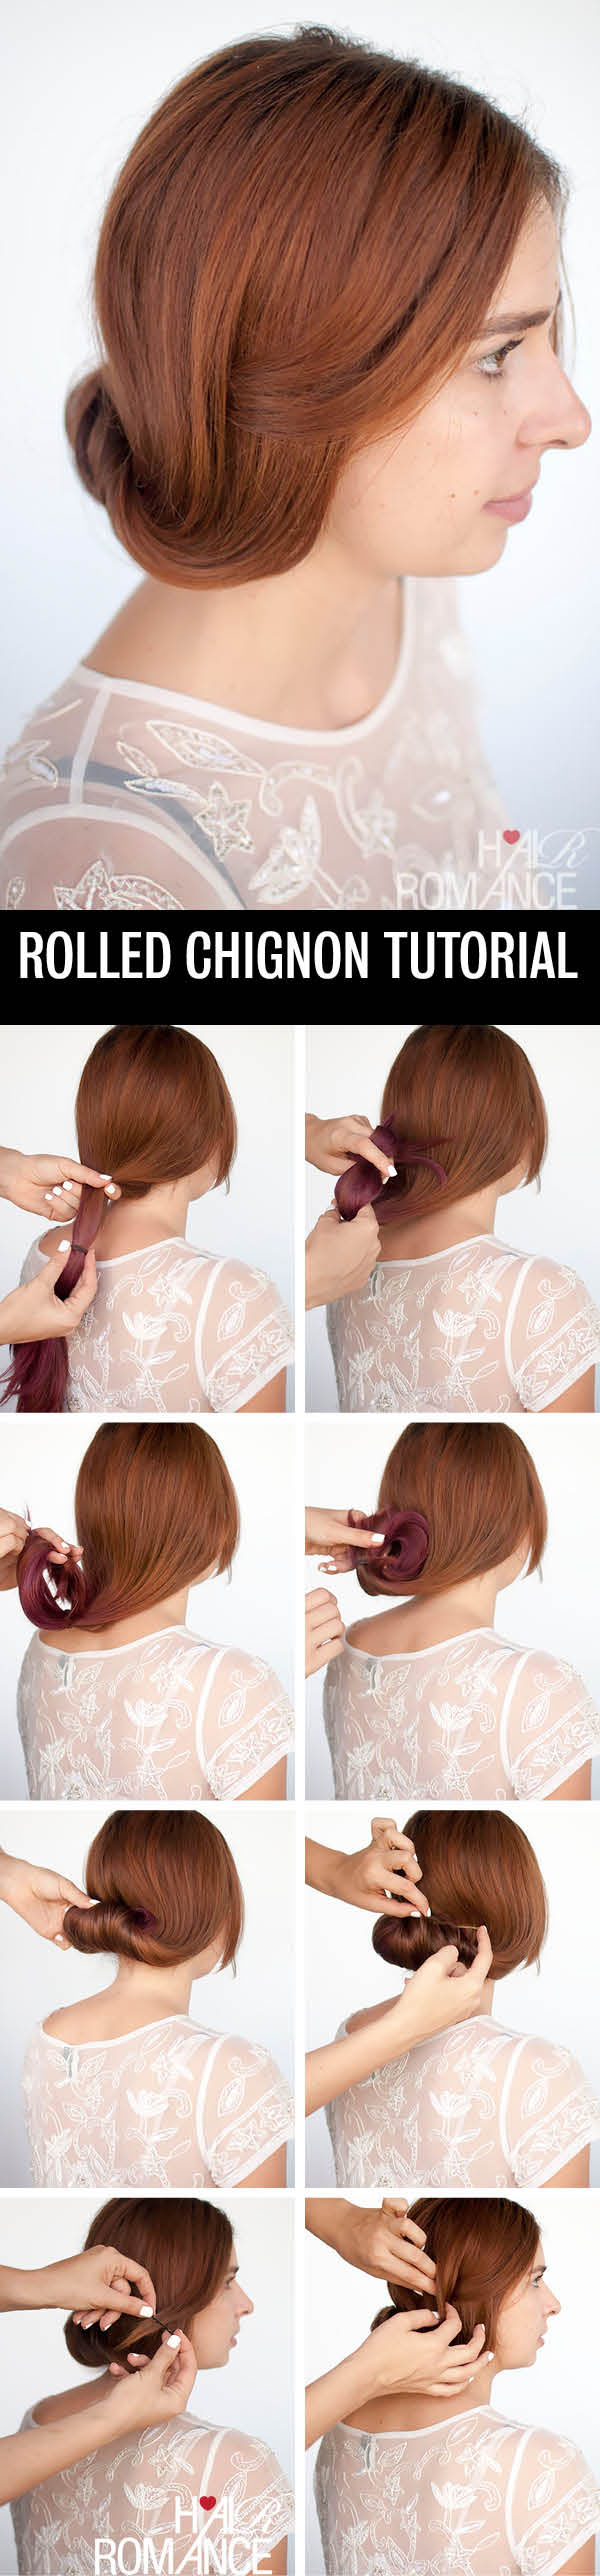 Hair Romance - Rolled chignon hairstyle tutorial